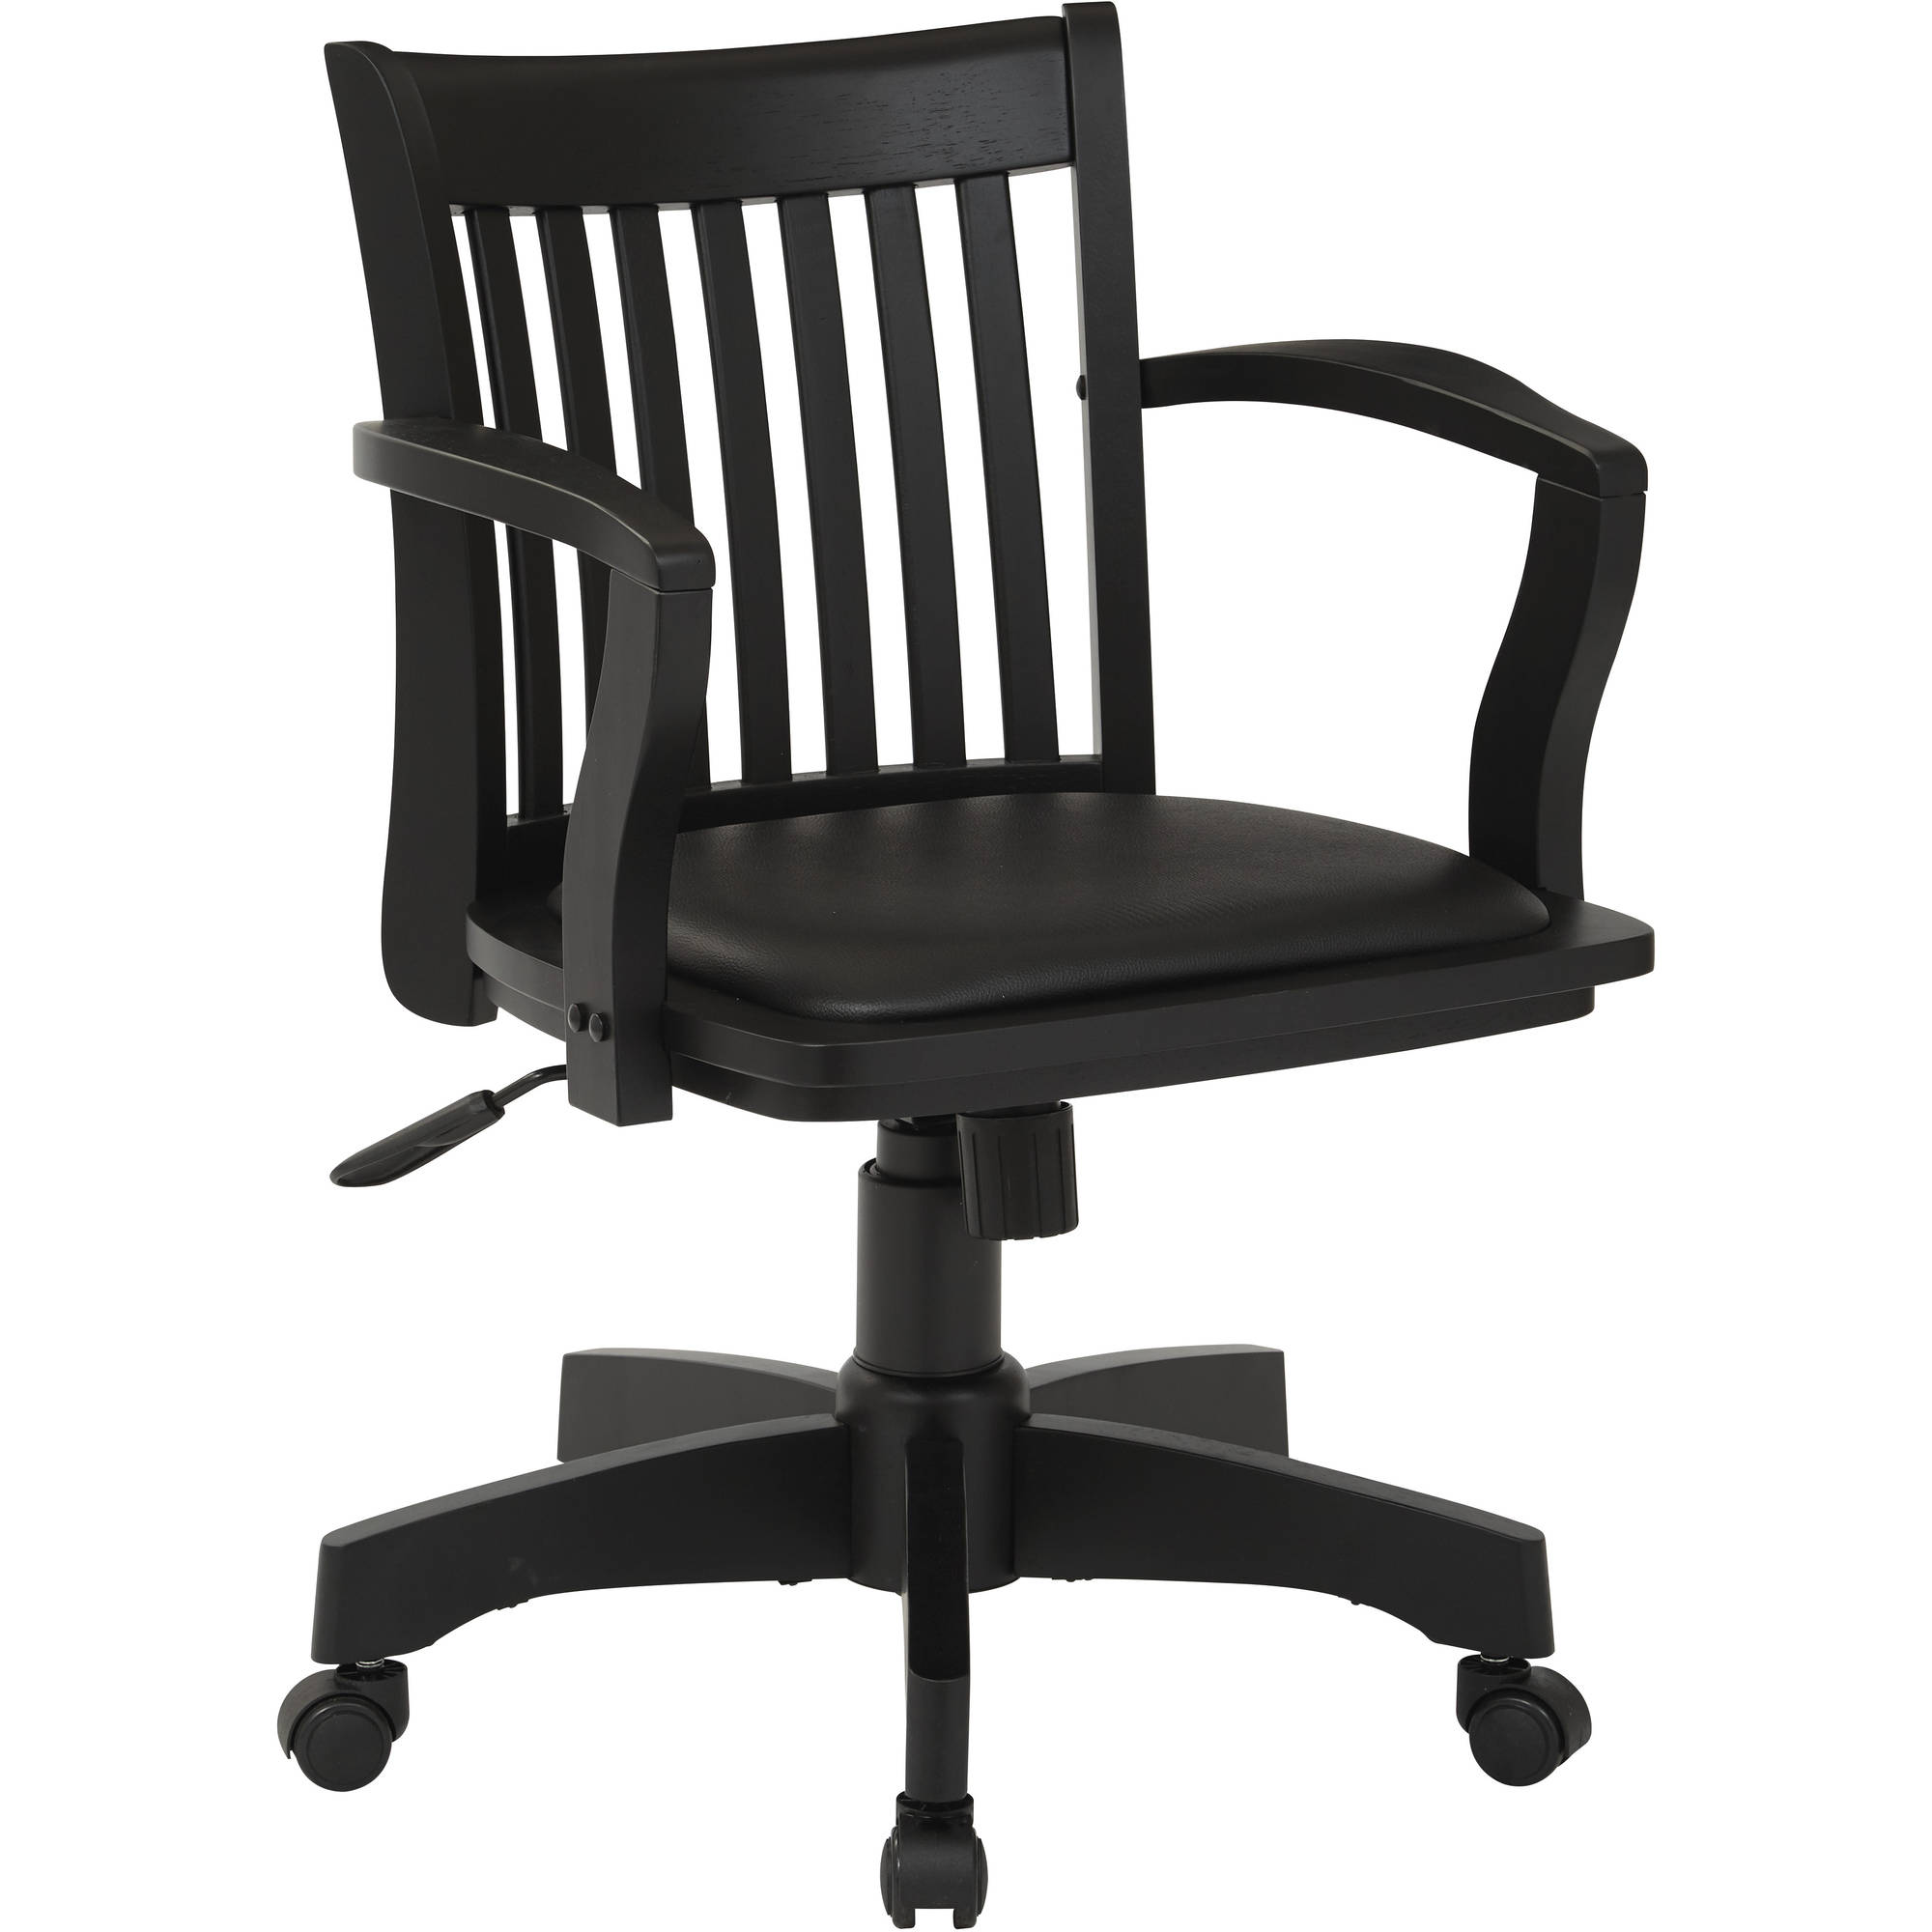 Wood Bankers Chair Office Star Products Deluxe Wood Banker 39s Chair With Arms